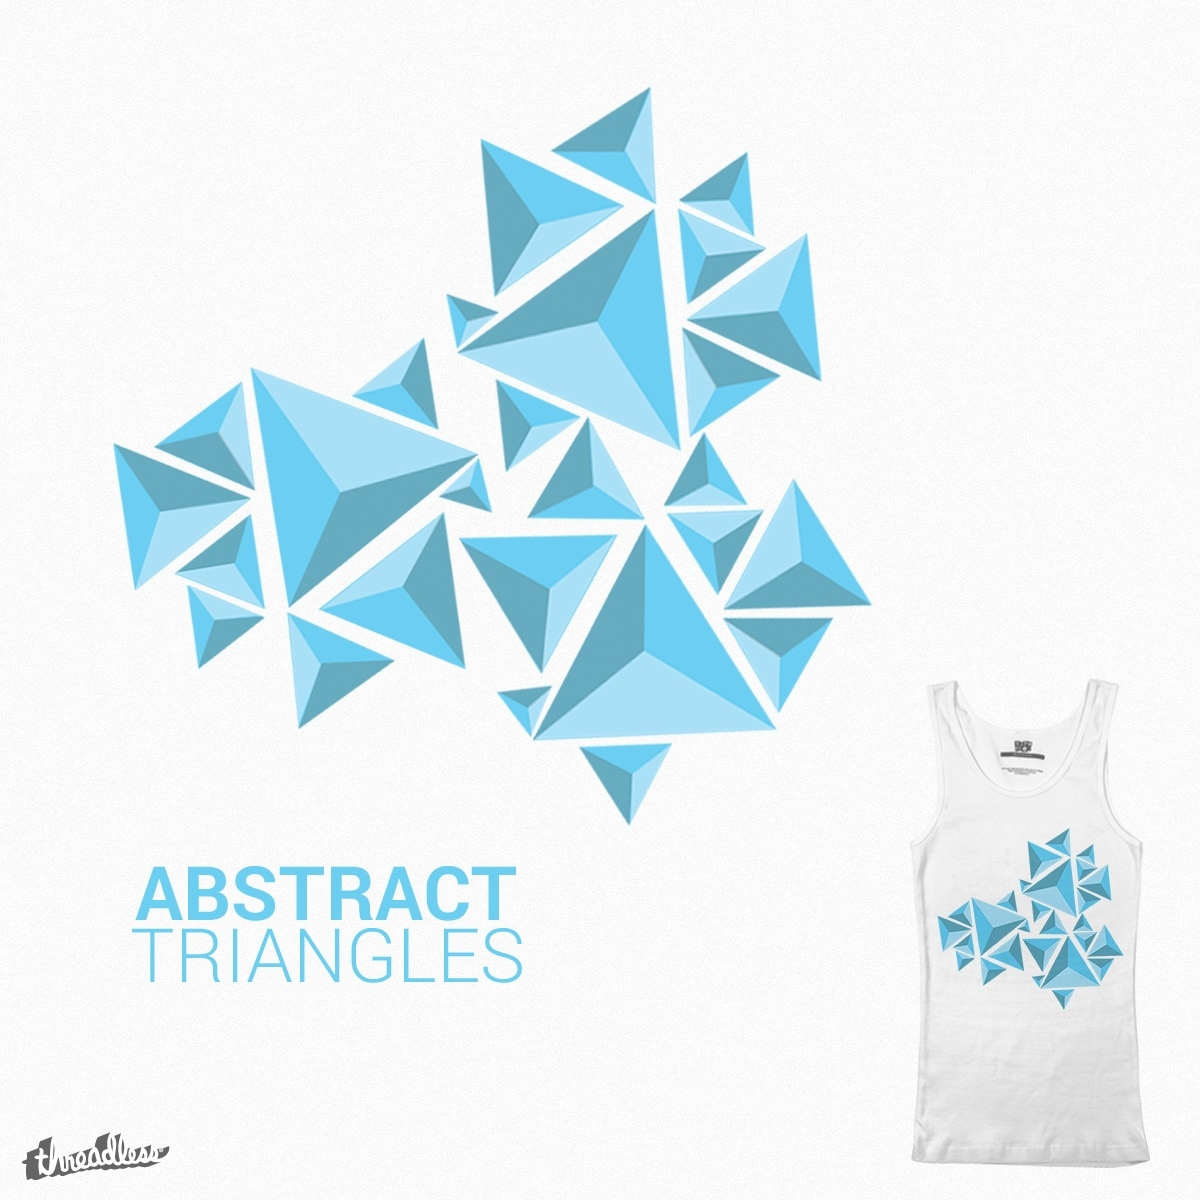 Abstract Triangles by BroPro on Threadless